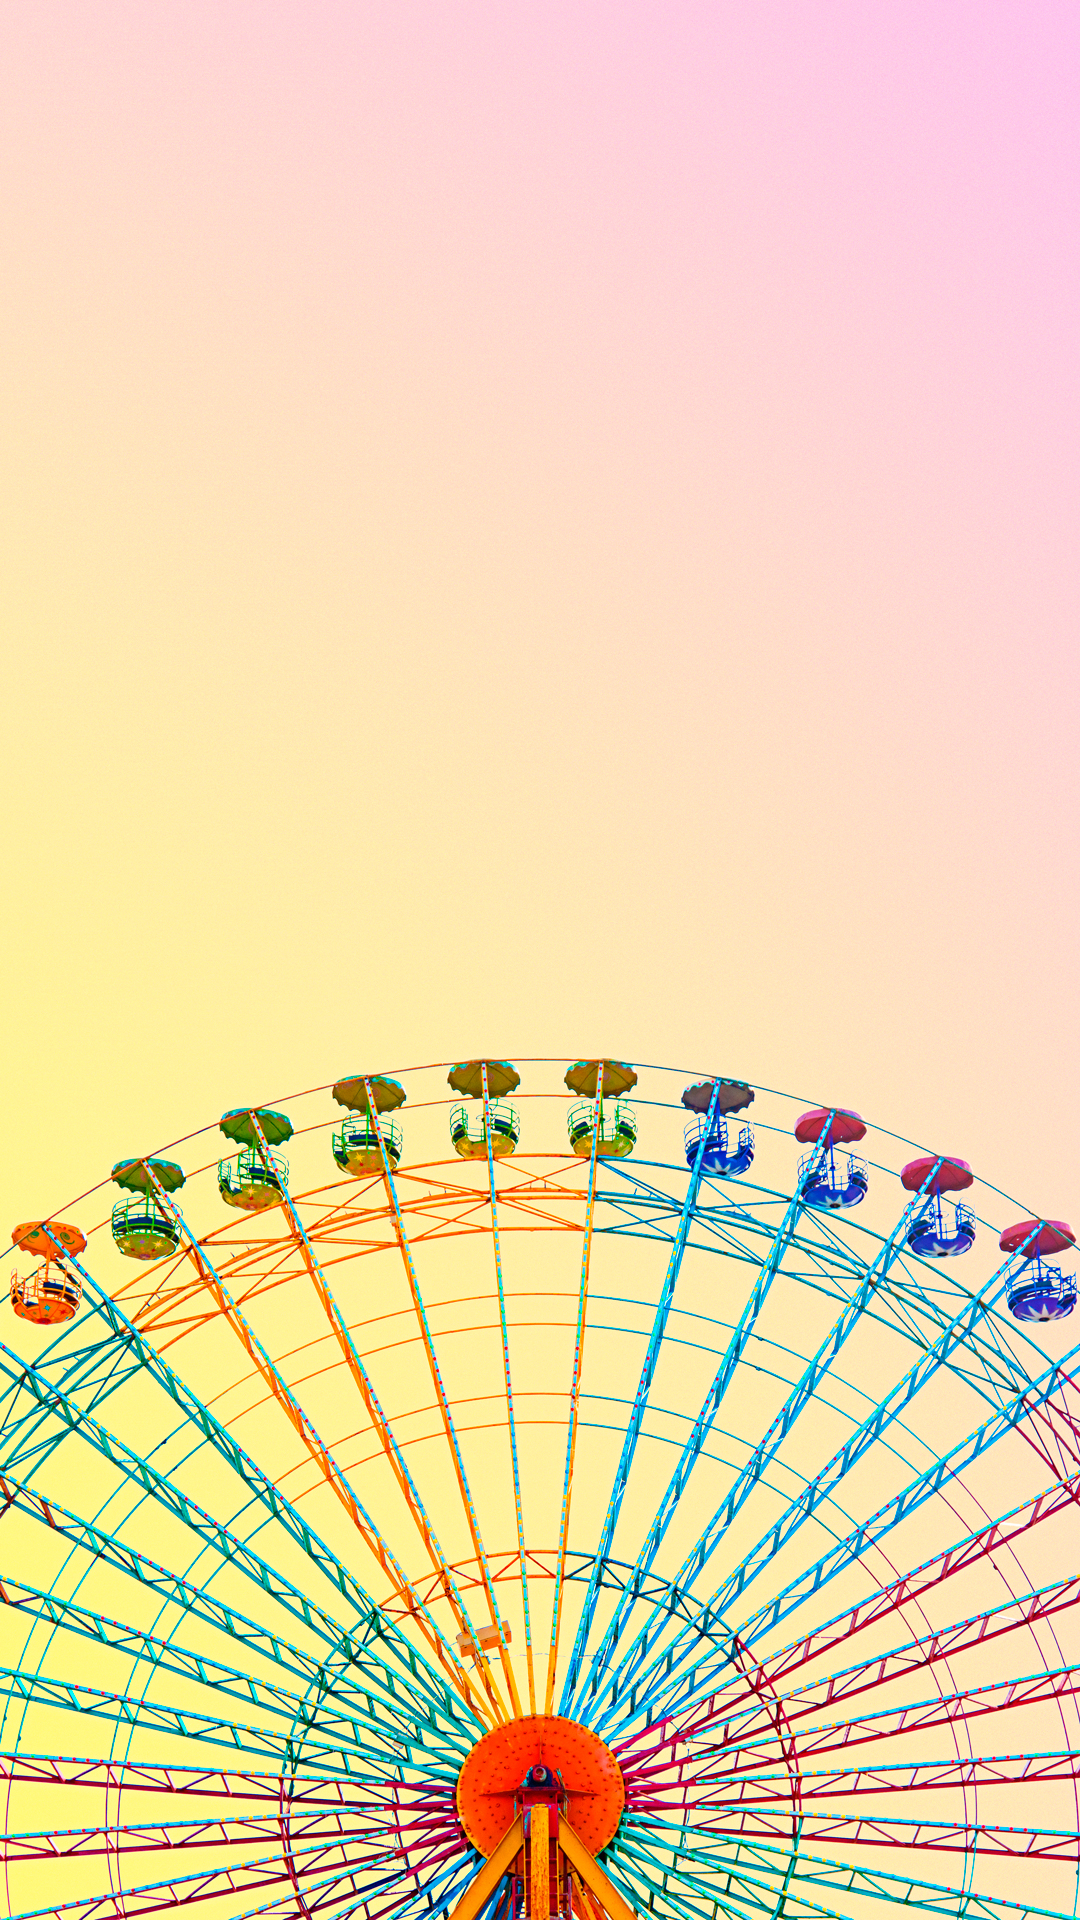 Download-your-favorite-candyminimal-to-your-phone-wallpaper-wp3804848